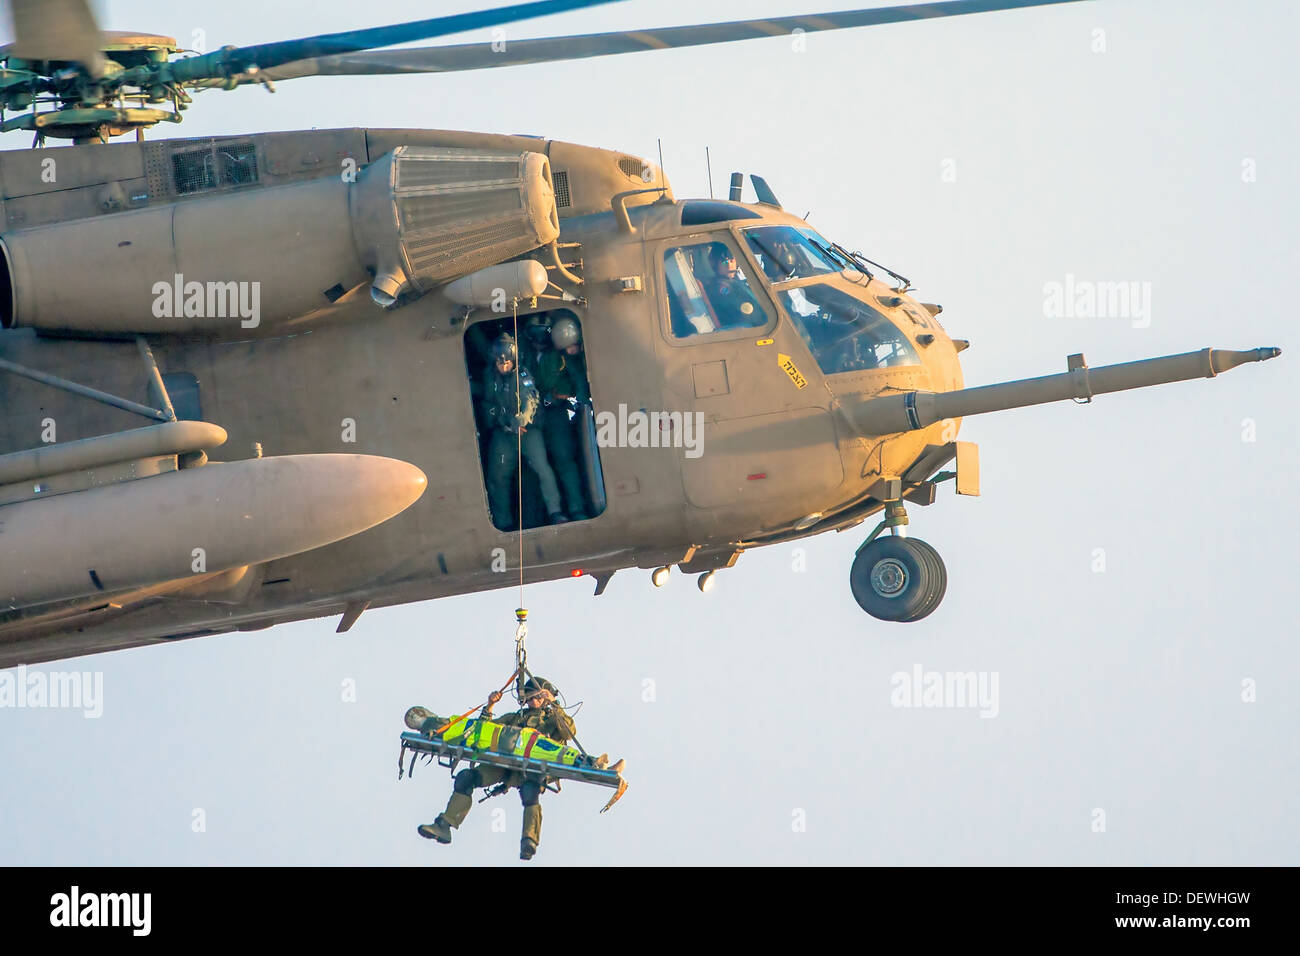 Israeli Air force (IAF) Sikorsky CH-53 helicopter during a rescue operation - Stock Image